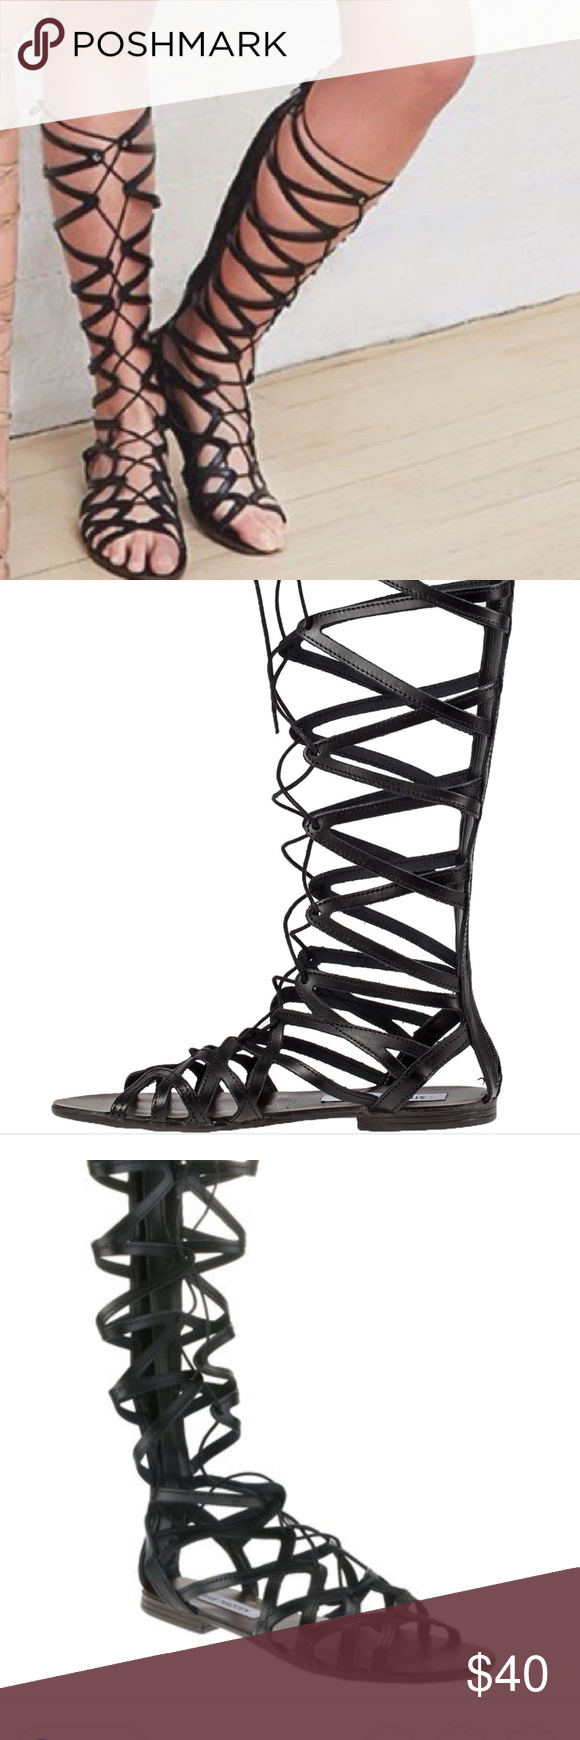 11c022be374 HERCULES GLADIATOR SANDALS IN BLACK SIZE 9 TRUE TO SIZE USED ONE ...